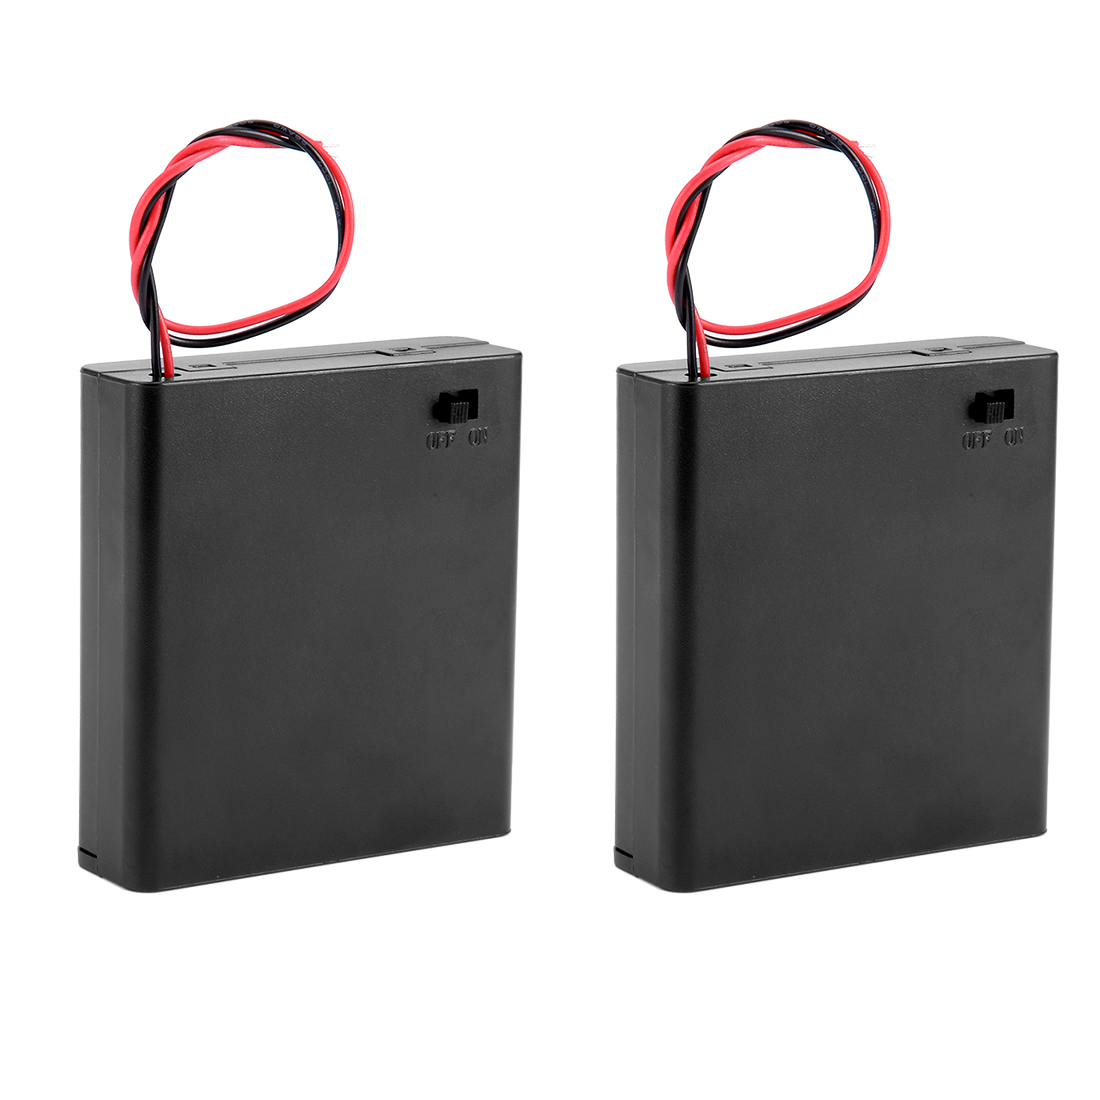 2 Pcs 4 x AA in Series = 6V Battery Holder Storage Case Wired ON/OFF Switch w Cover